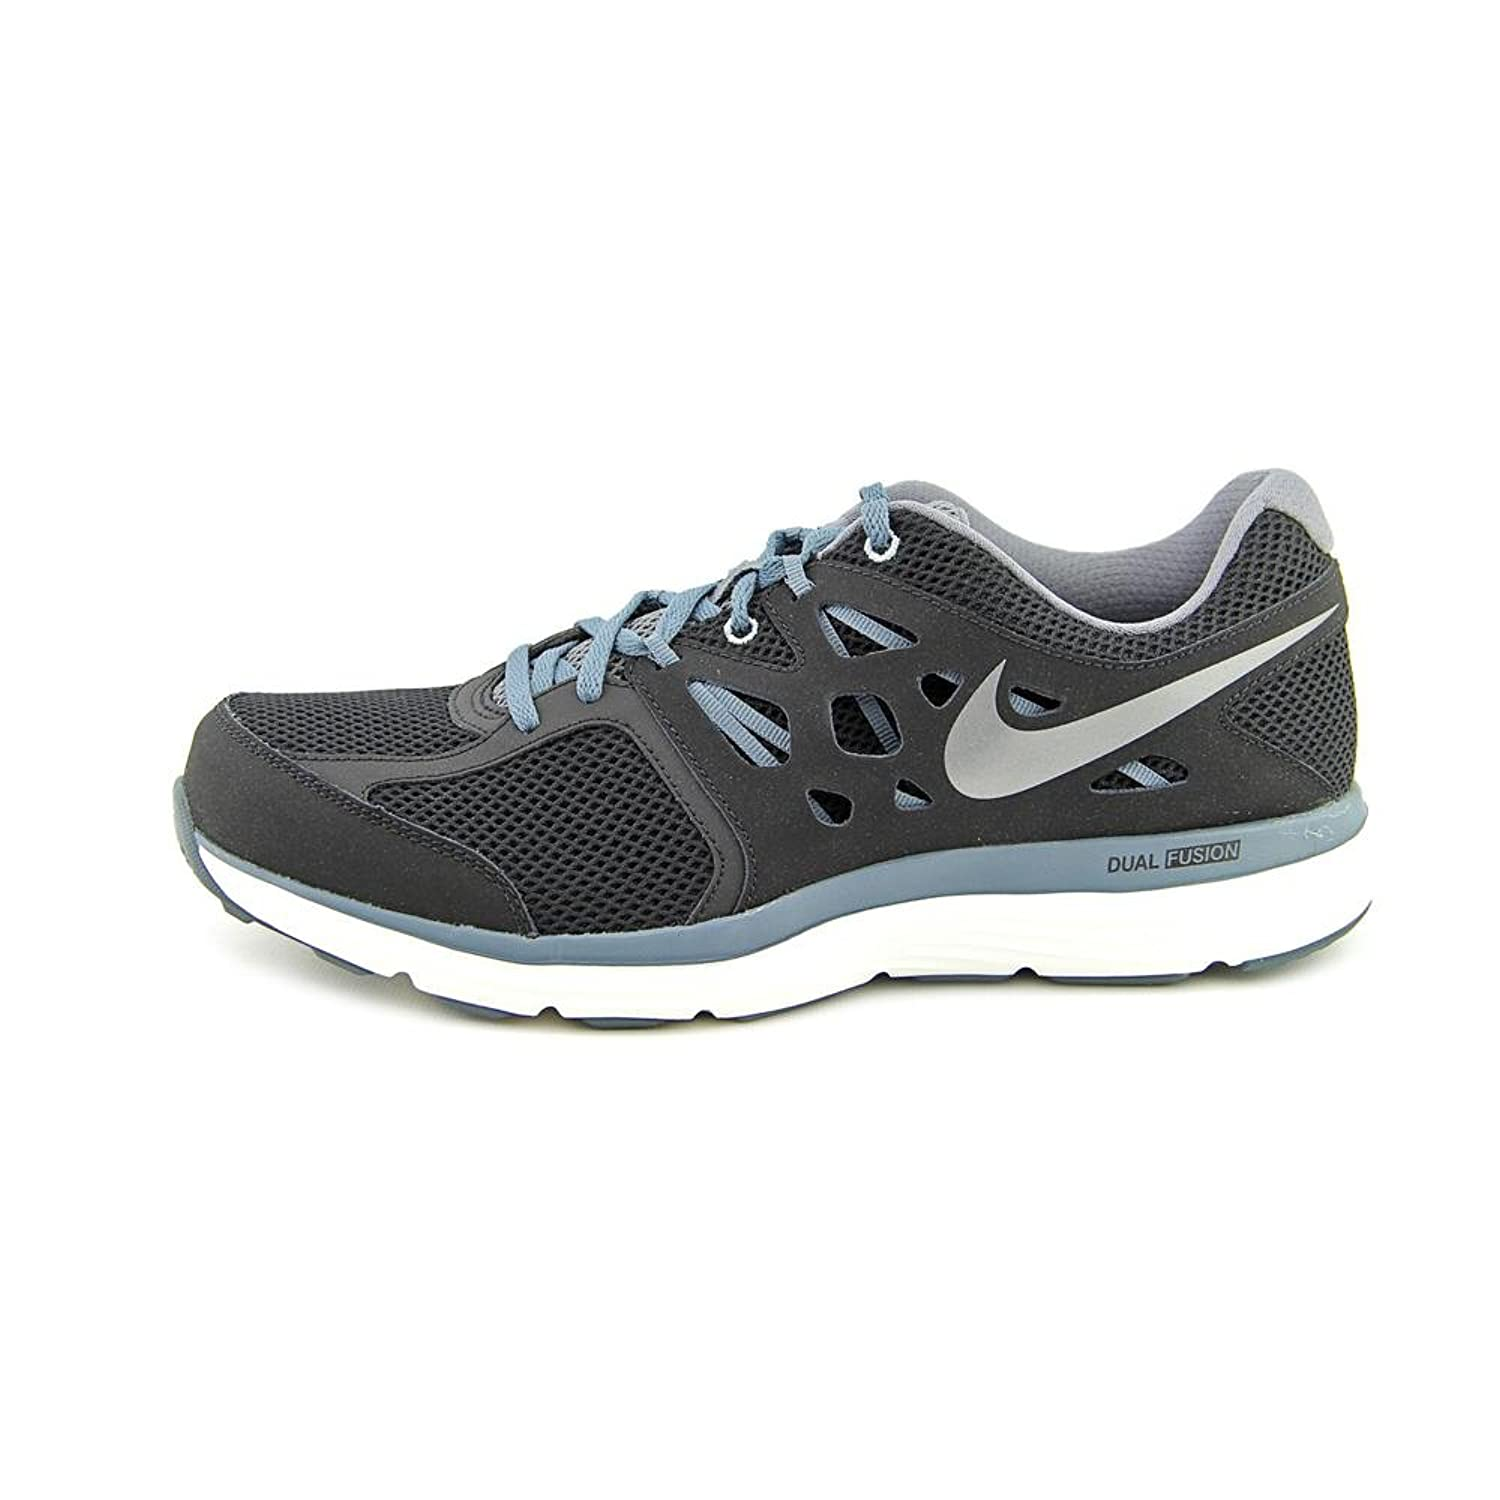 Amazon.com   Nike Dual Fusion Lite Mens Running Shoes, WIDE SNEAKERS (9.5)    Track & Field & Cross Country